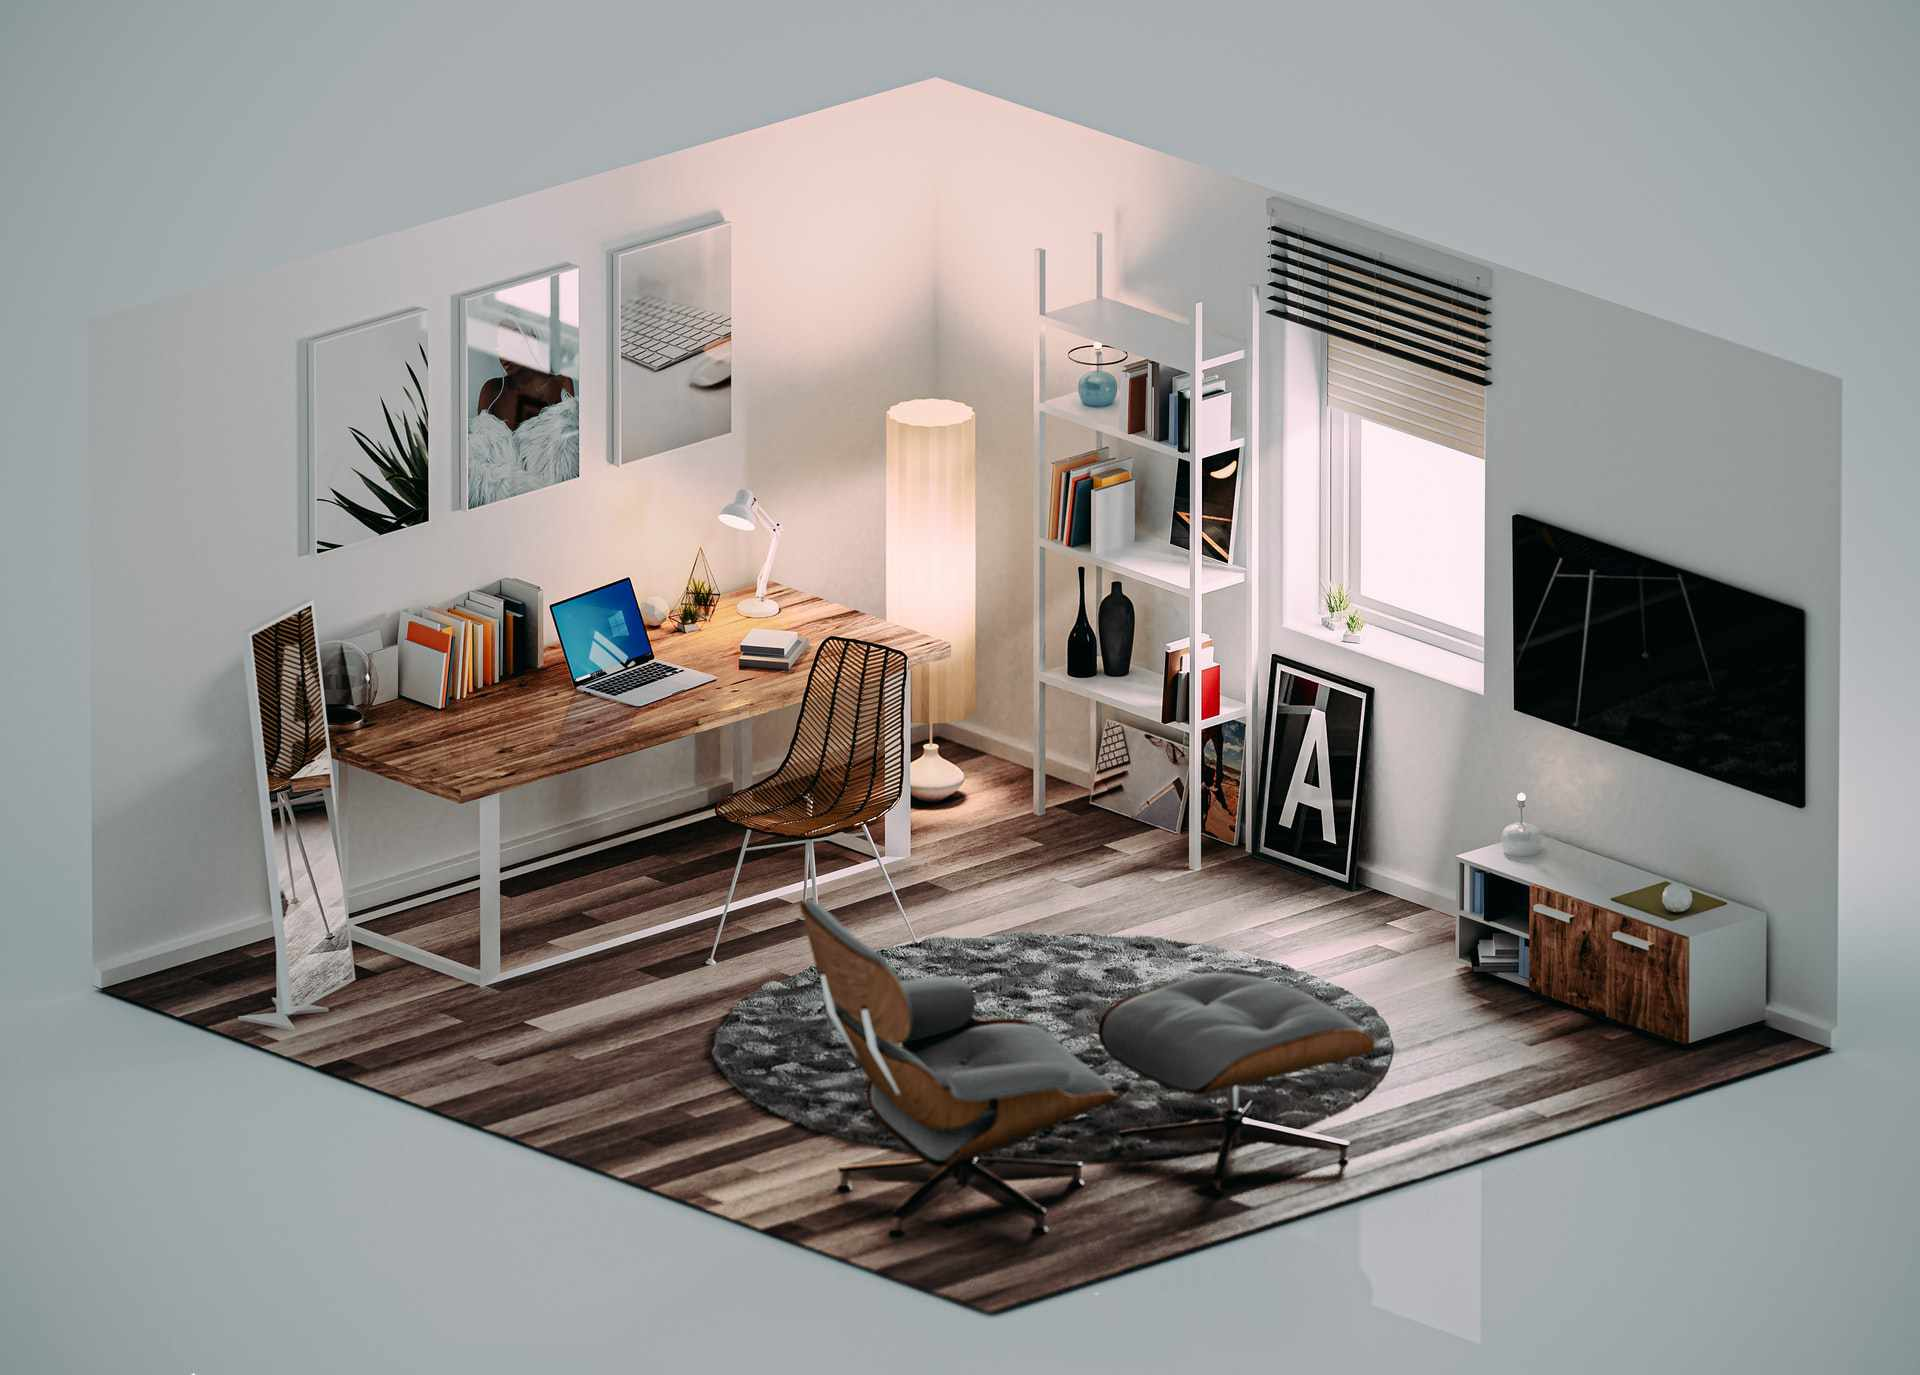 An image of a virtual room.